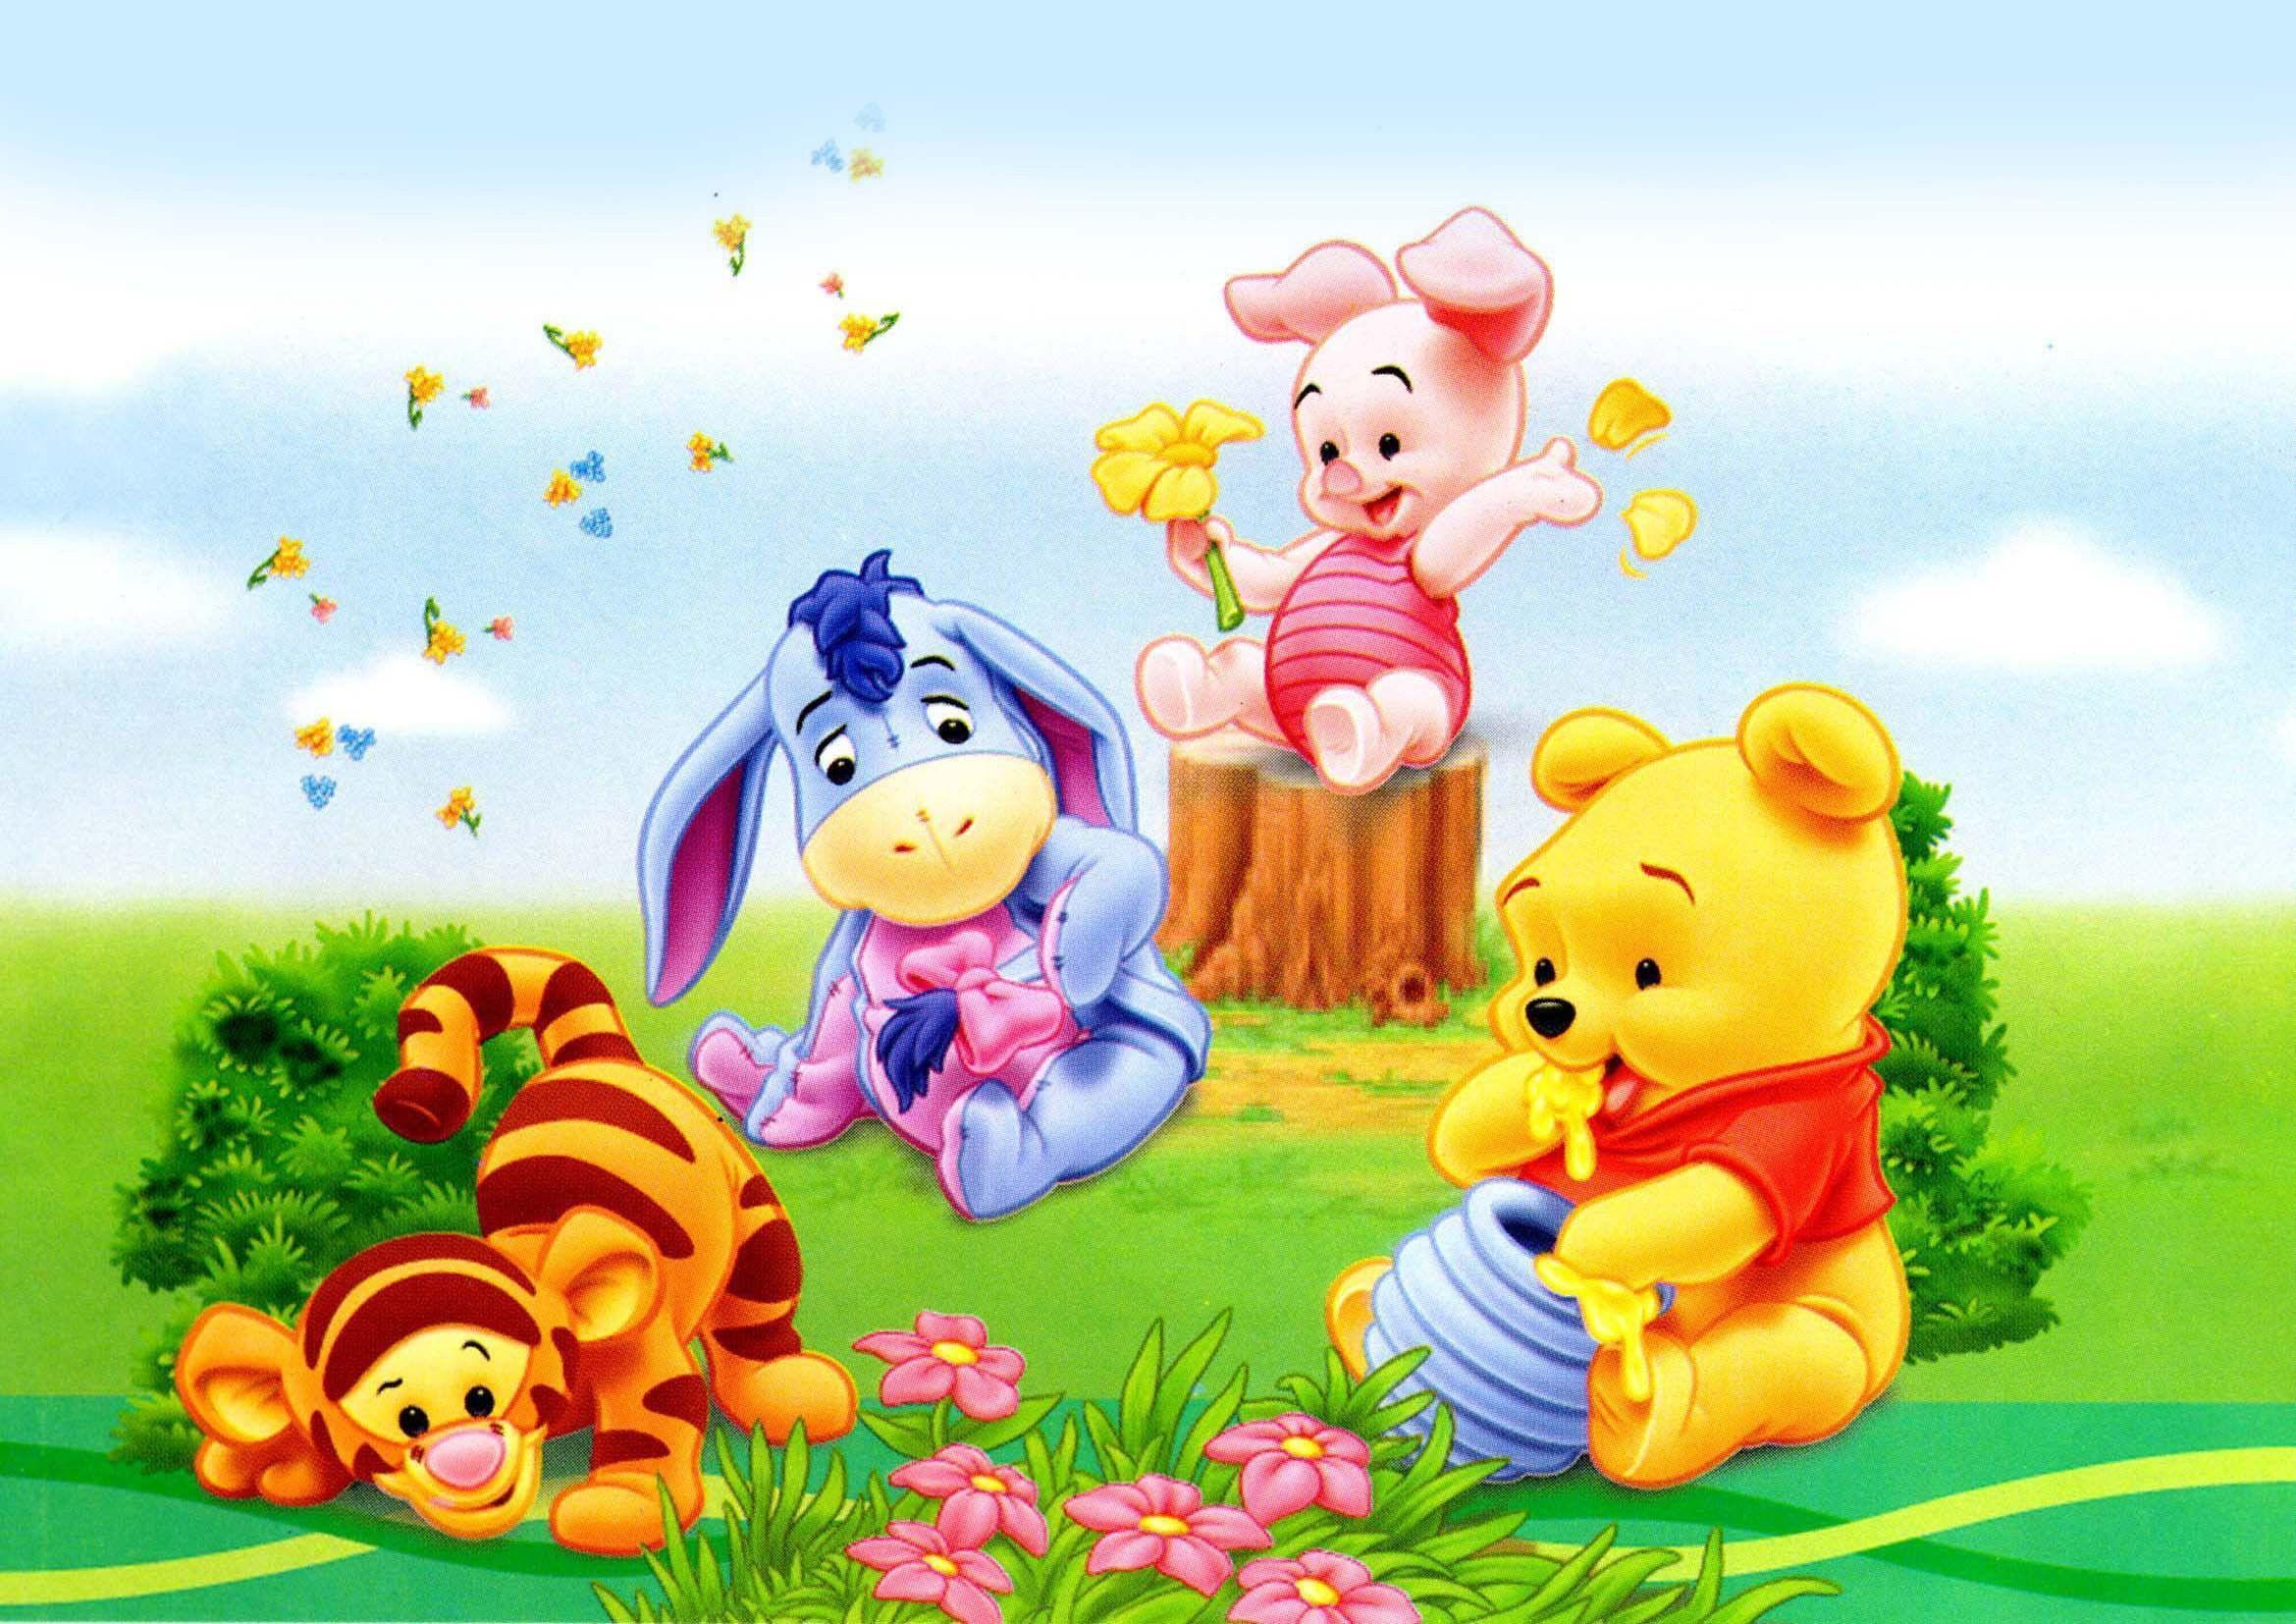 It is a picture of Sweet Images of Pooh Bear